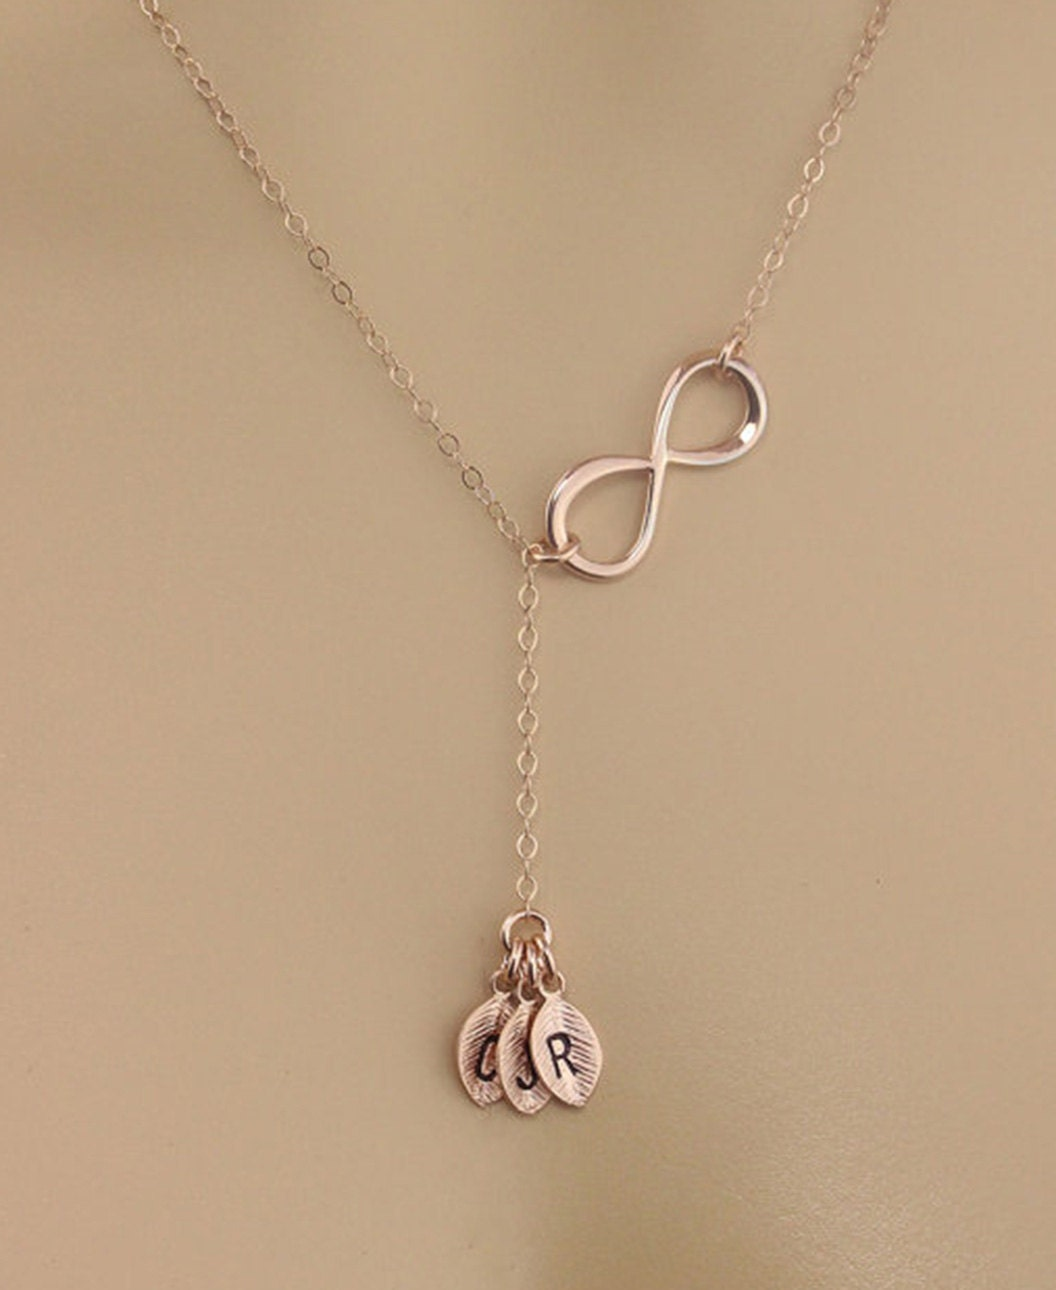 Sale personalized rose gold infinity necklace y necklace for Rose gold personalized jewelry